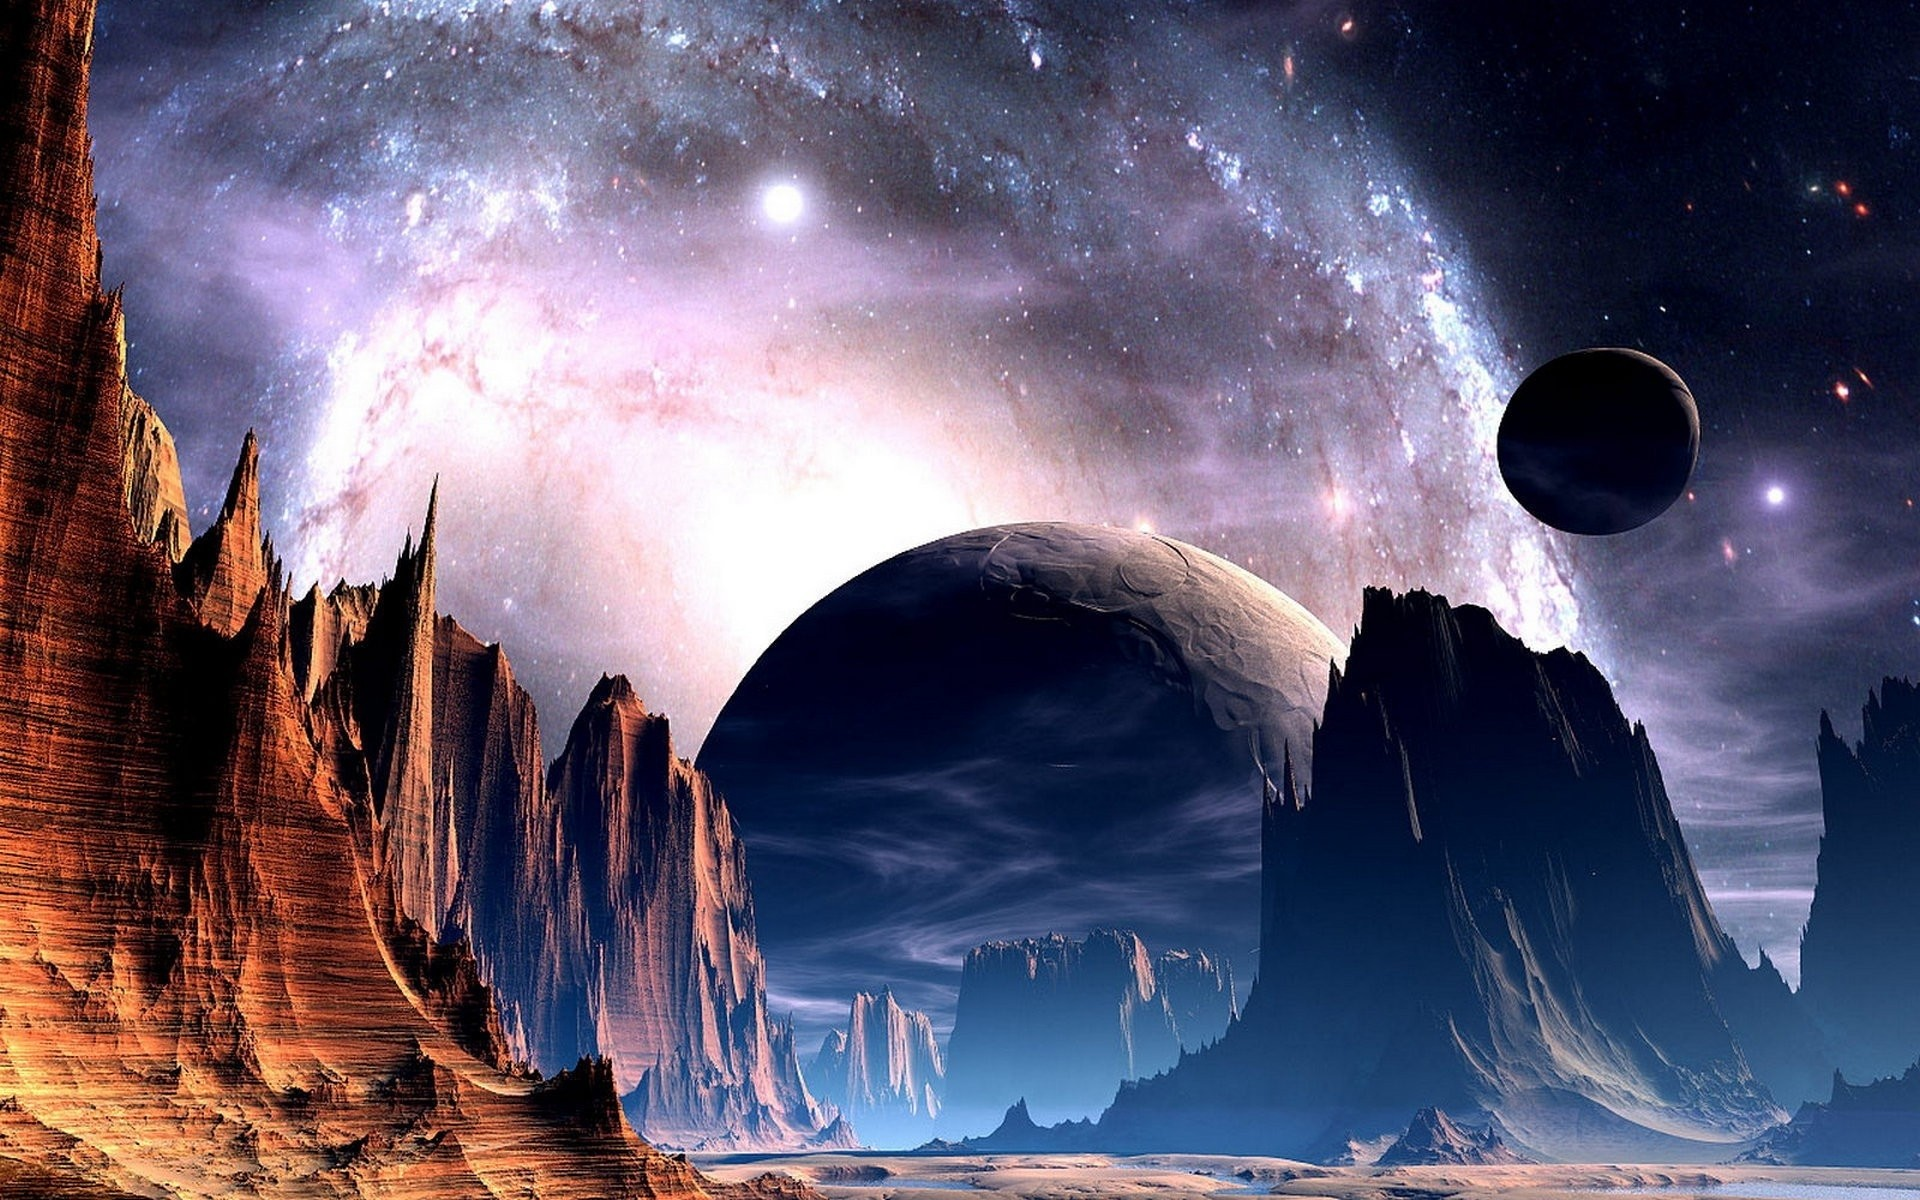 Sci fi science fiction planets alien sky stars nebula galaxy space universe  light bright nature landscapes mountains cliff valley spire art artistic …